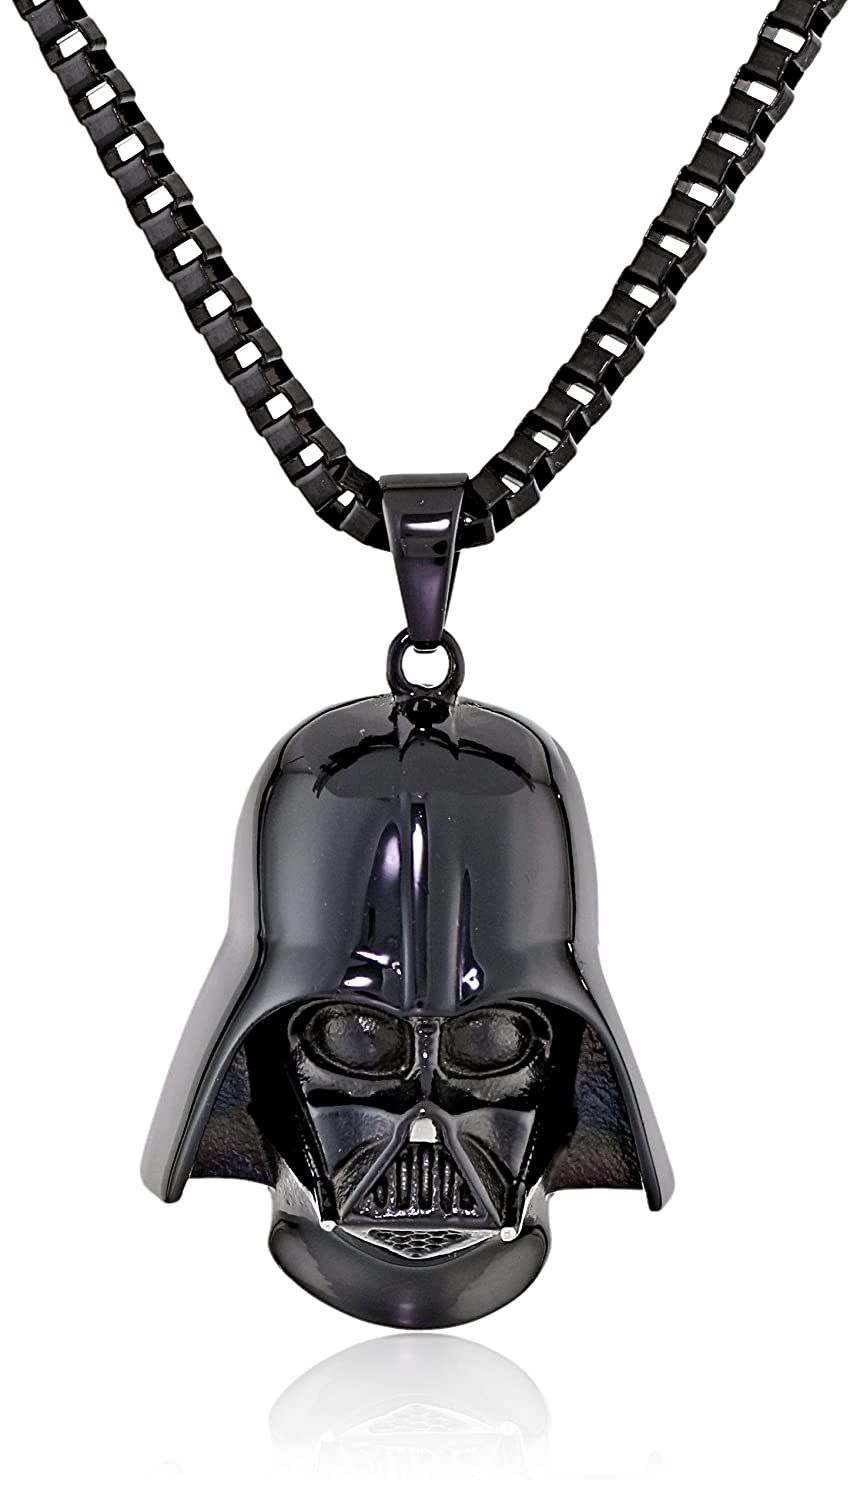 Star Wars Jewelry Unisex 3D Darth Vader Black Ion-Plated Stainless Steel Pendant Necklace, 24 24 Salesone International SWDV3DPNK01